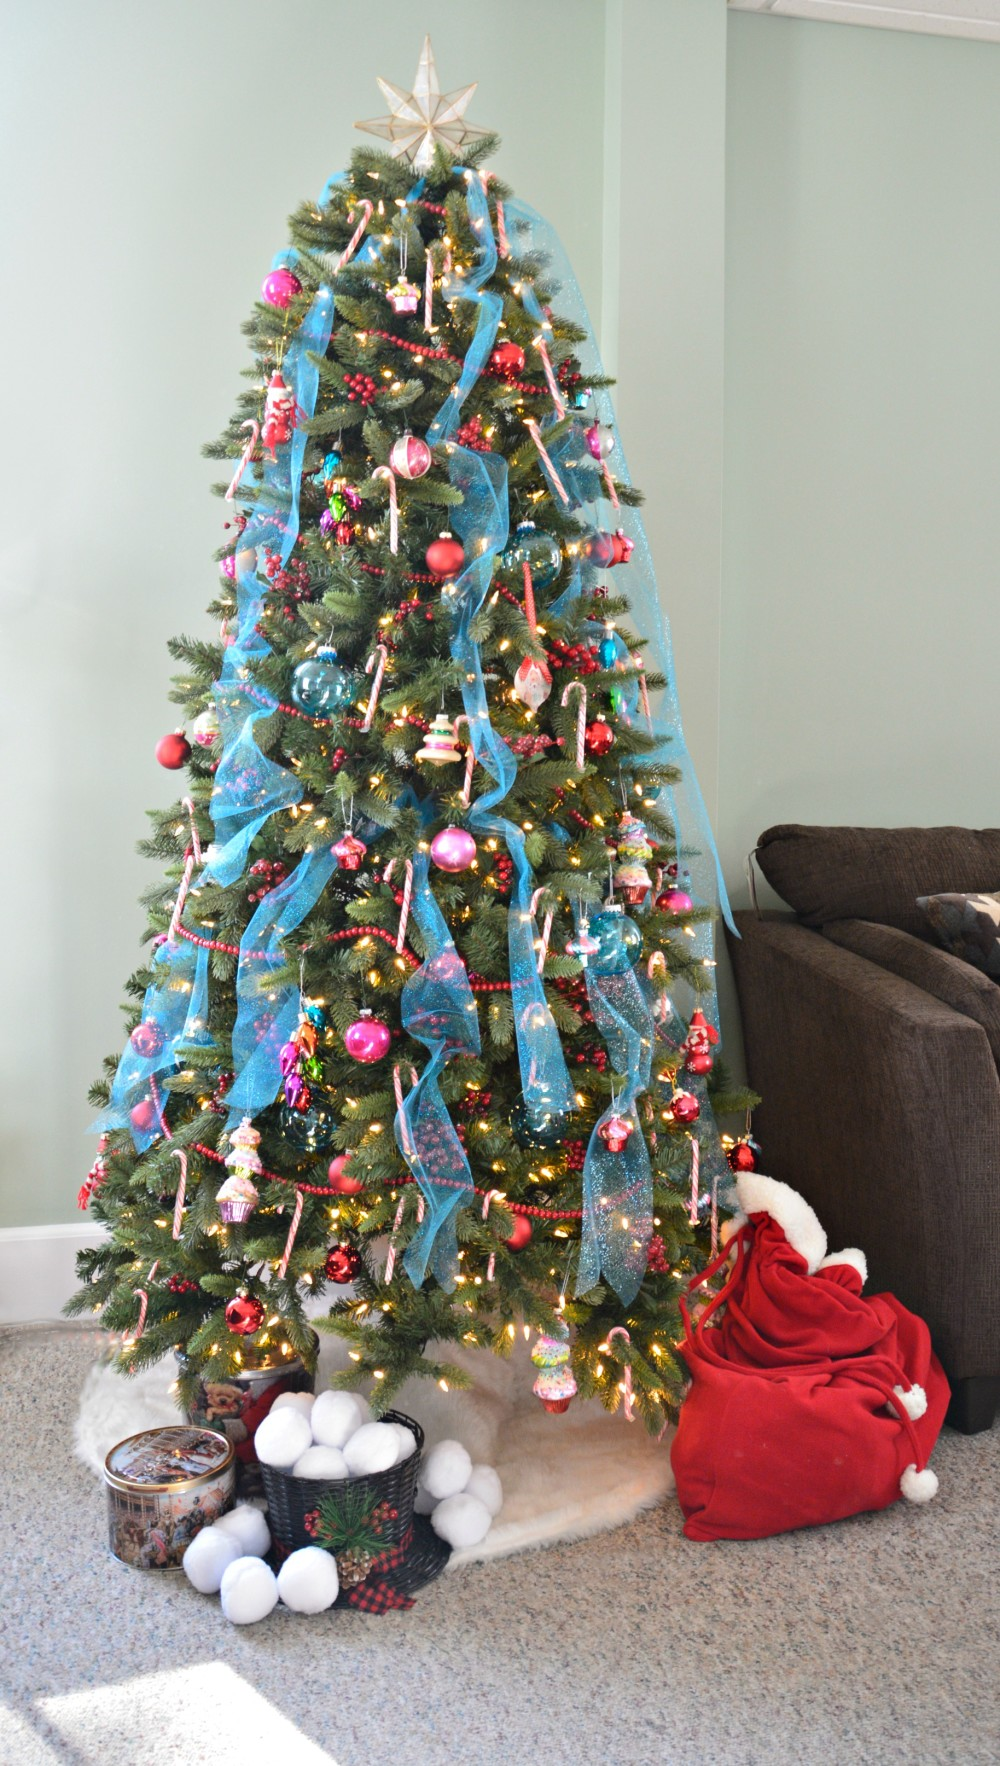 Christmas Tree for a Cause